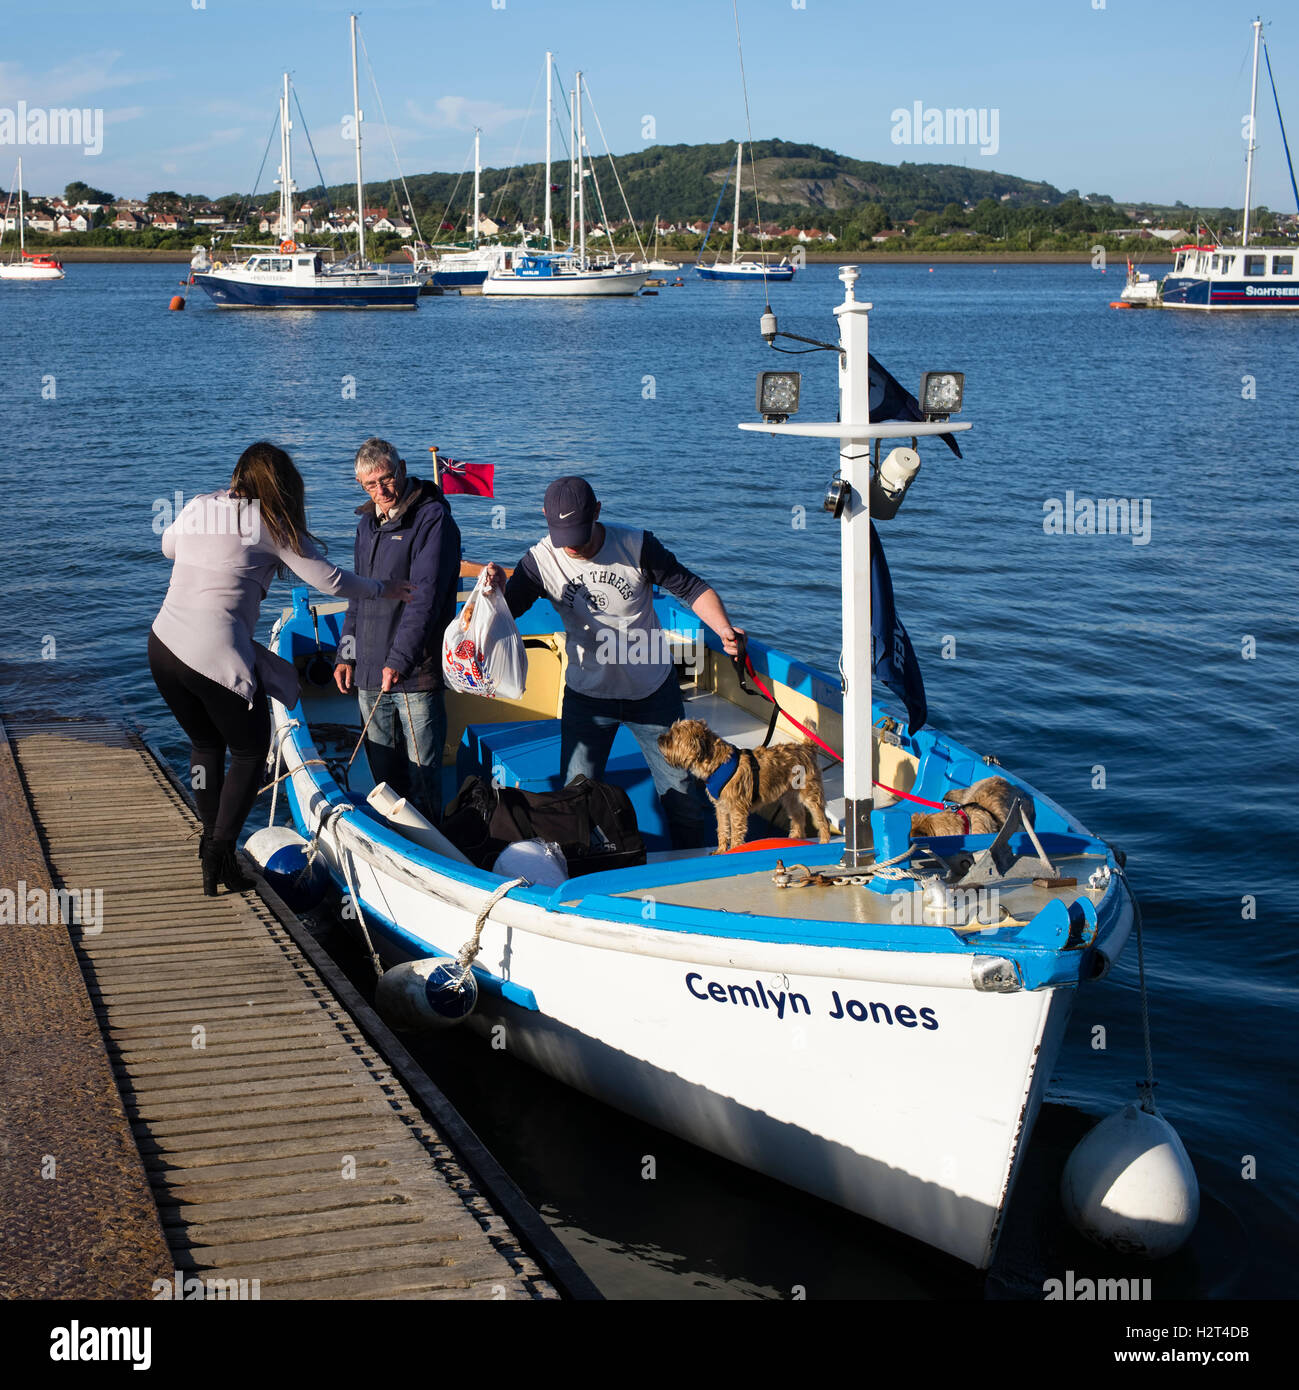 The Conwy water taxi taking-on passengers at the quayside, Conwy, Wales, UK - Stock Image